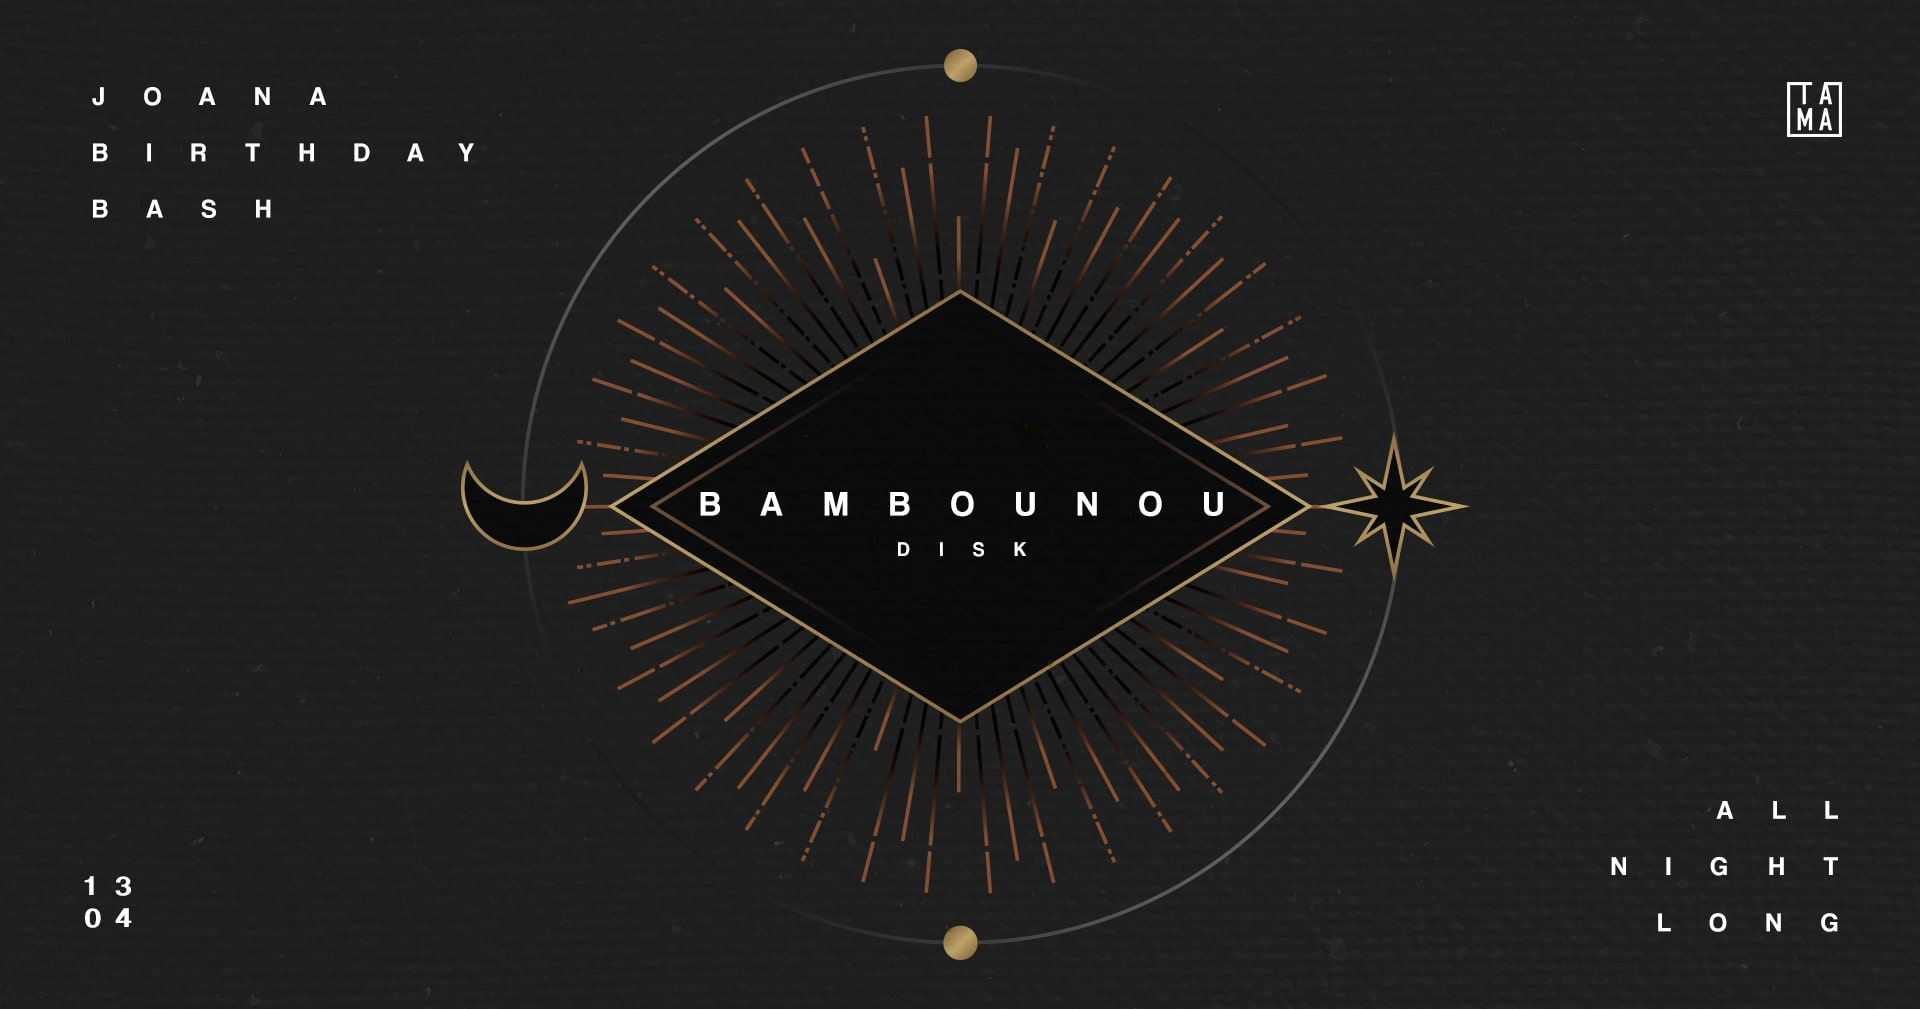 Joana Birthday Bash: Bambounou all night long!